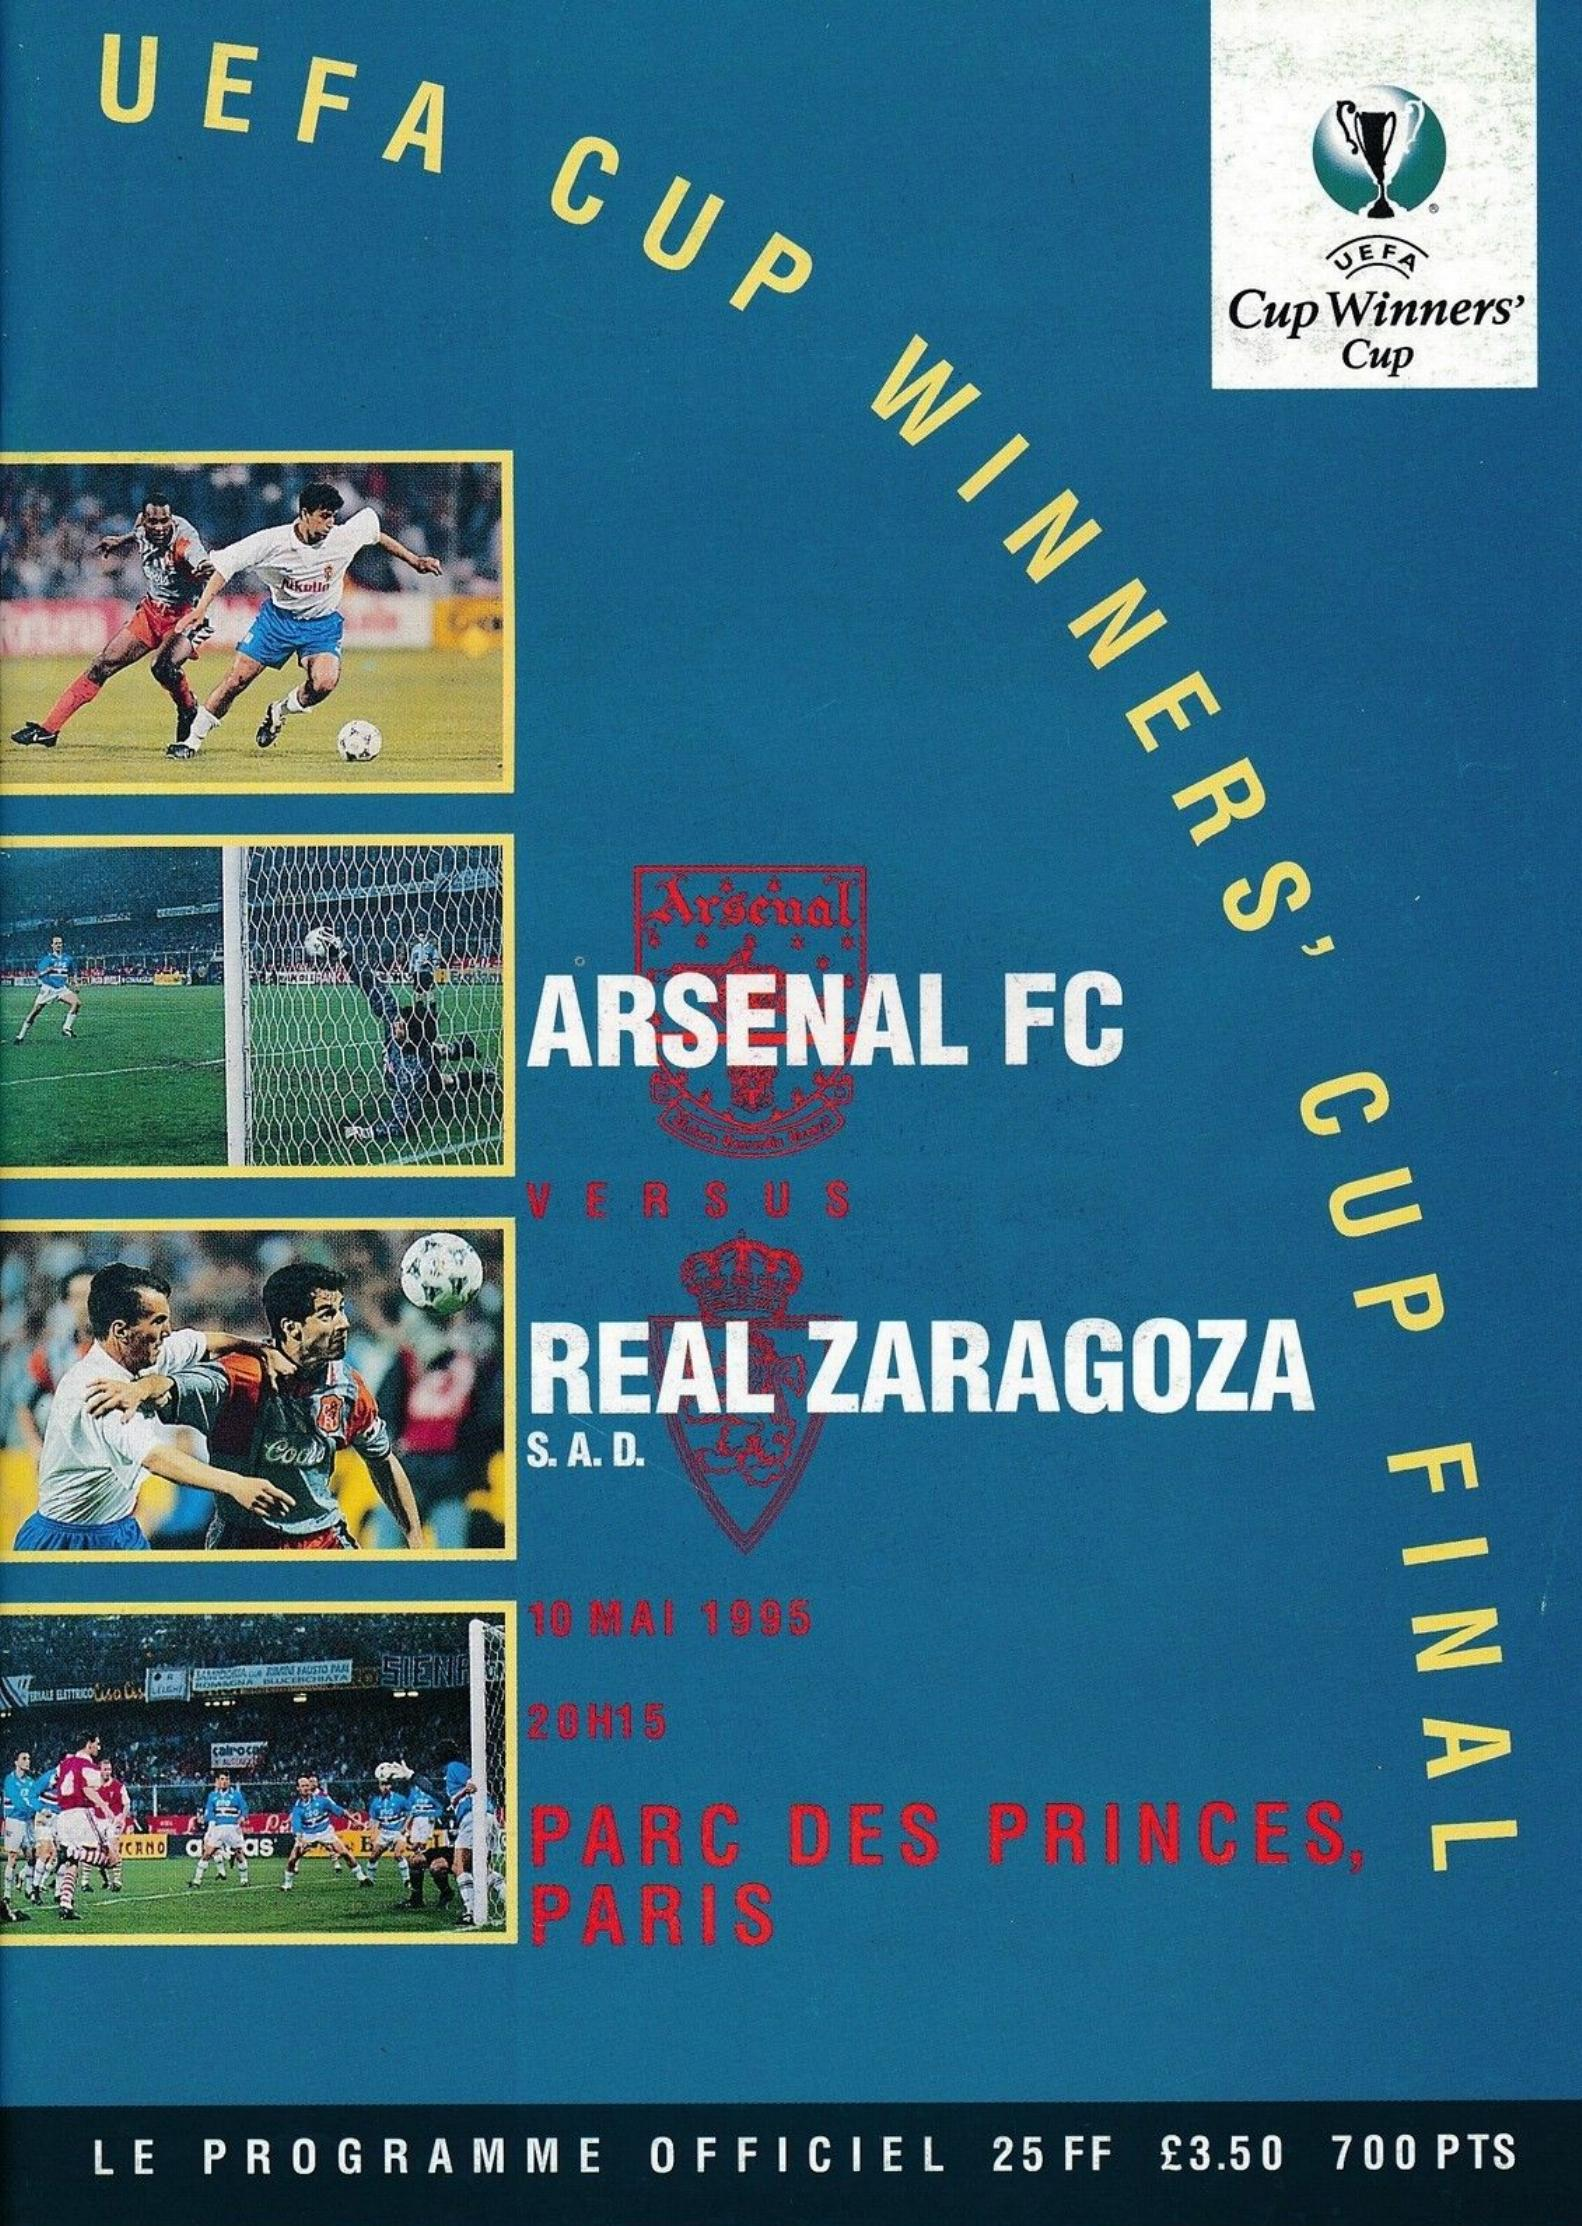 1995 CUP WINNERS CUP FINAL - ARSENAL v REAL ZARAGOZA